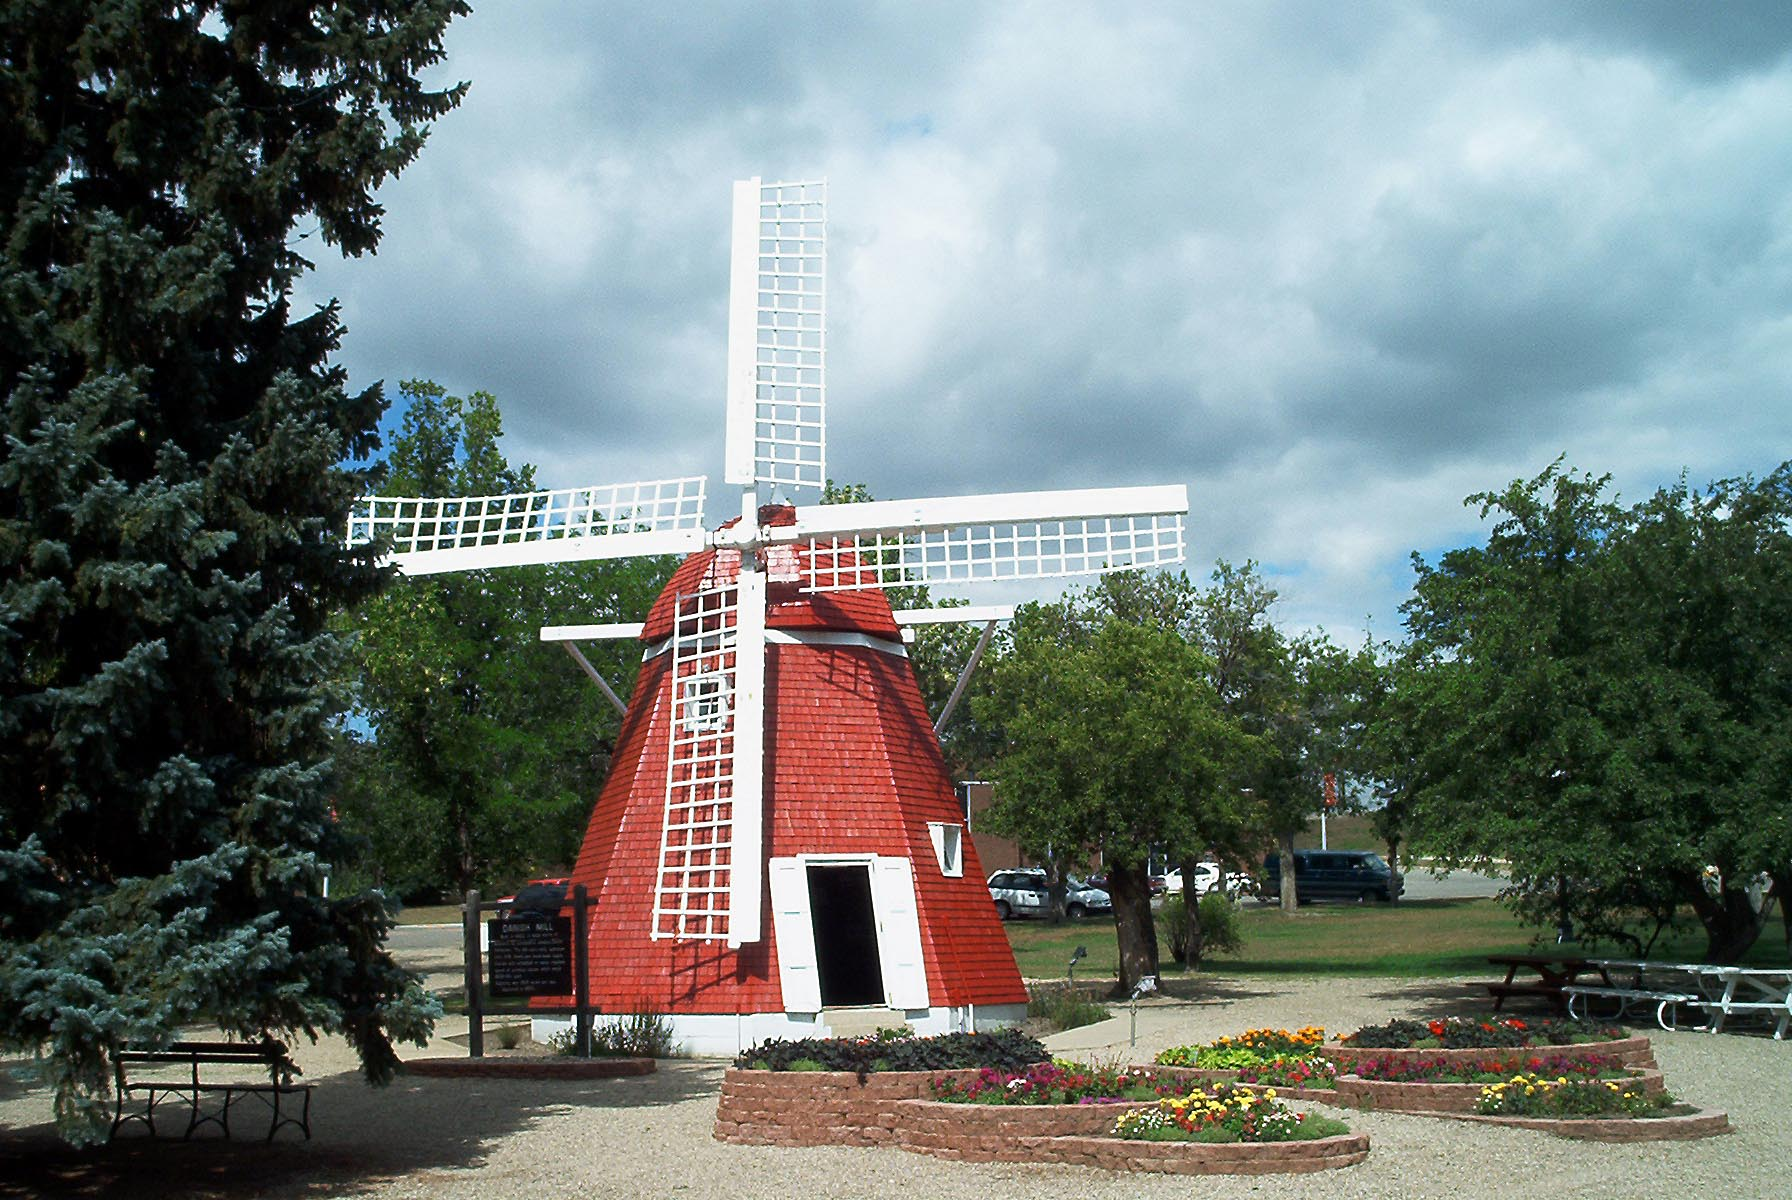 Des Moines Shopping >> Kenmare, North Dakota Is The Most Underrated Town In The State To Visit